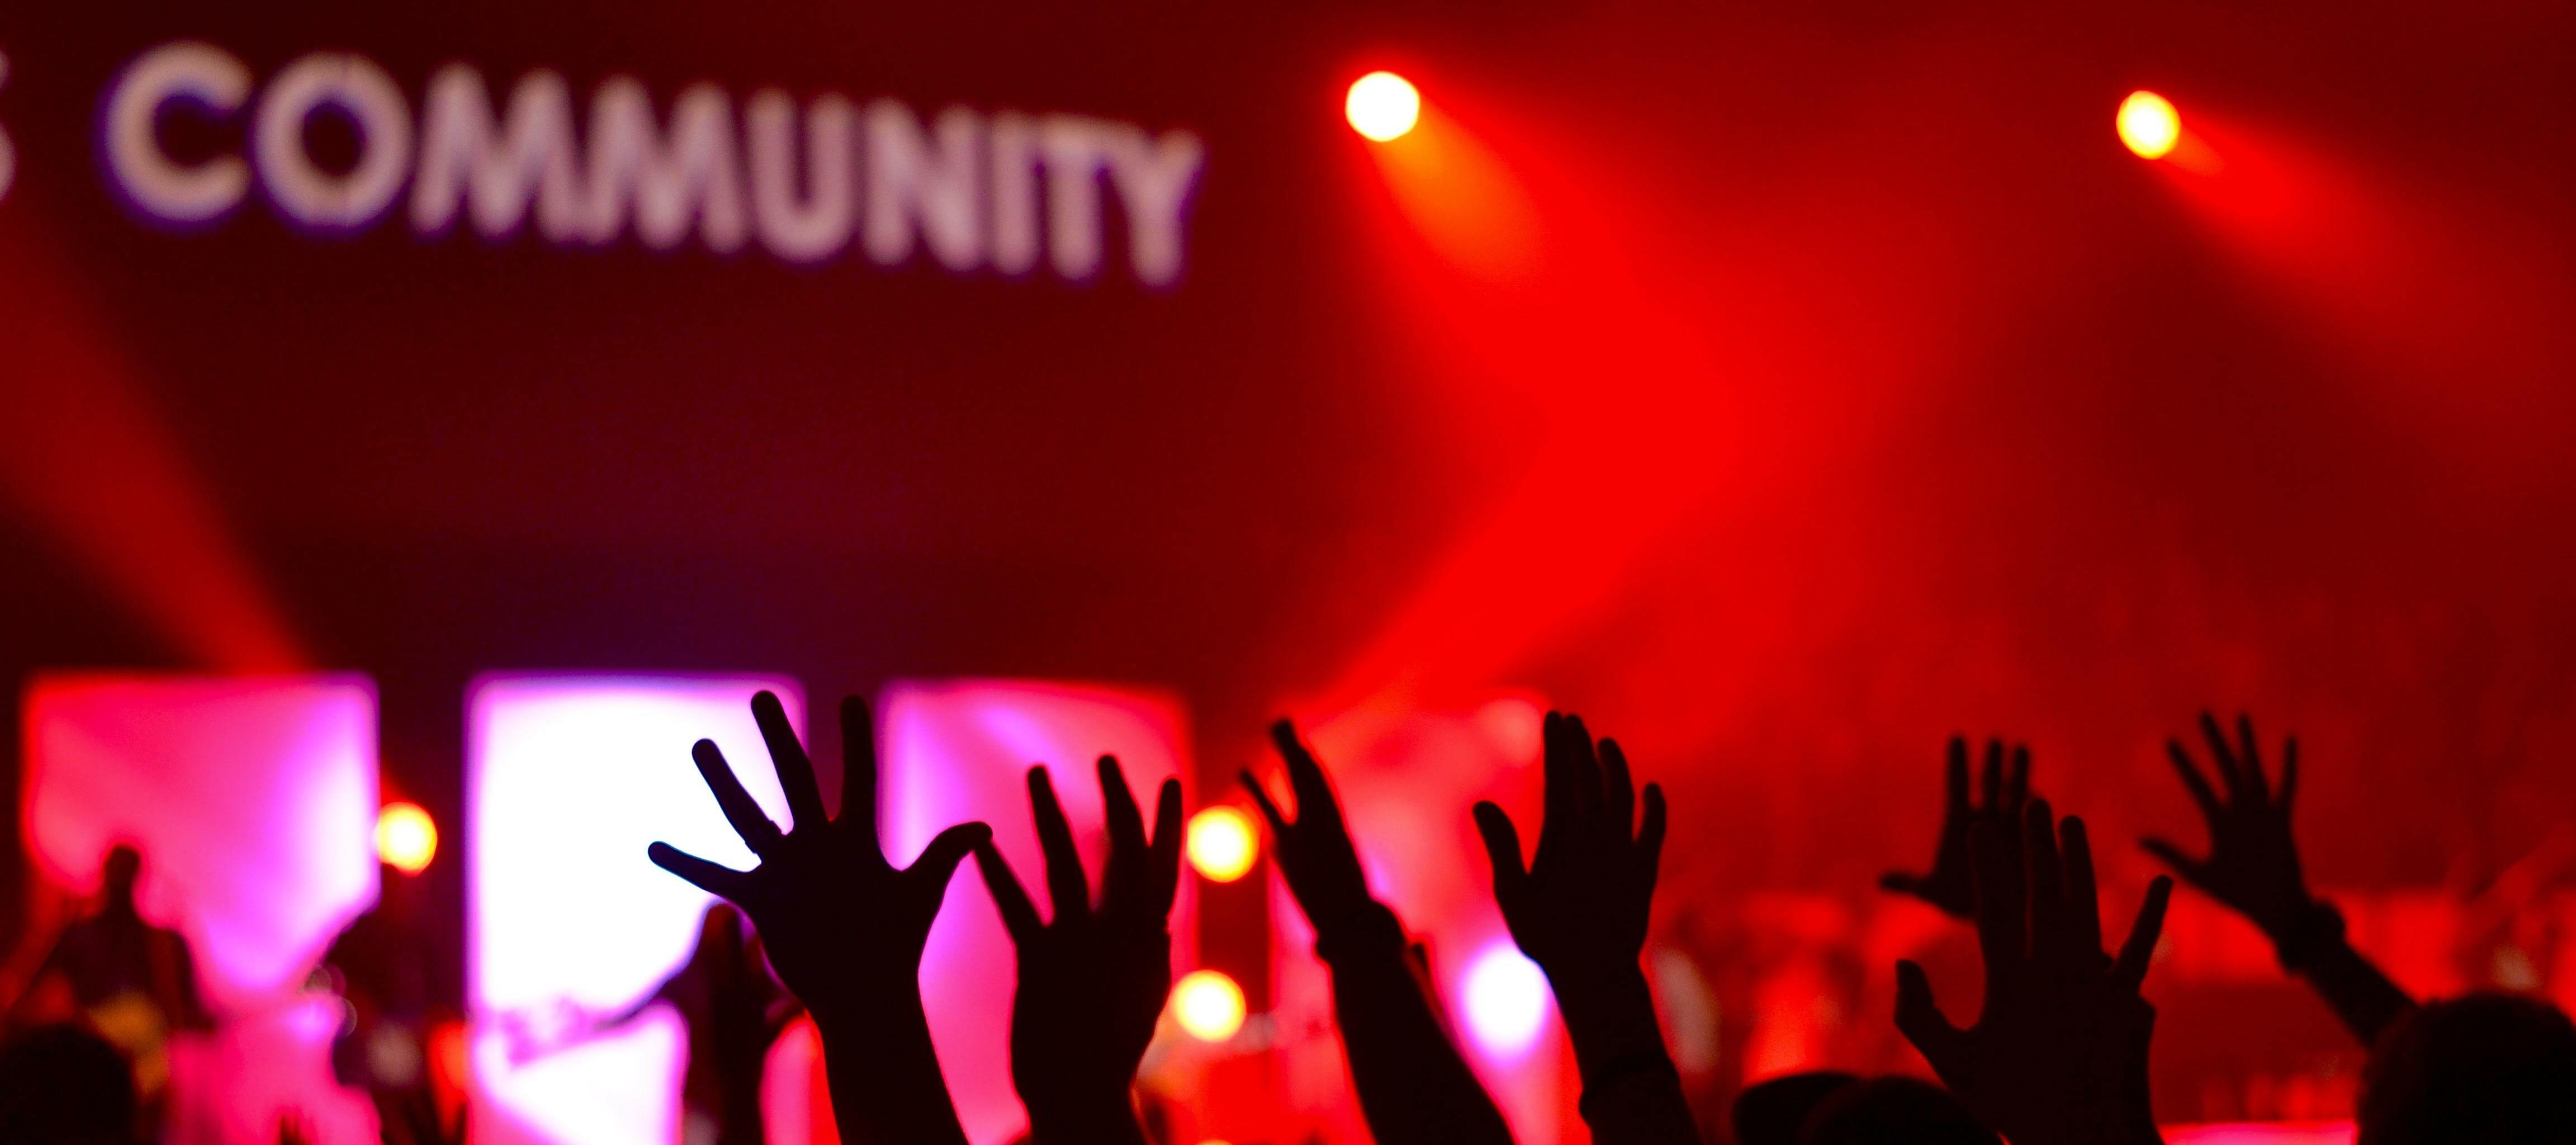 Get involved with Community!